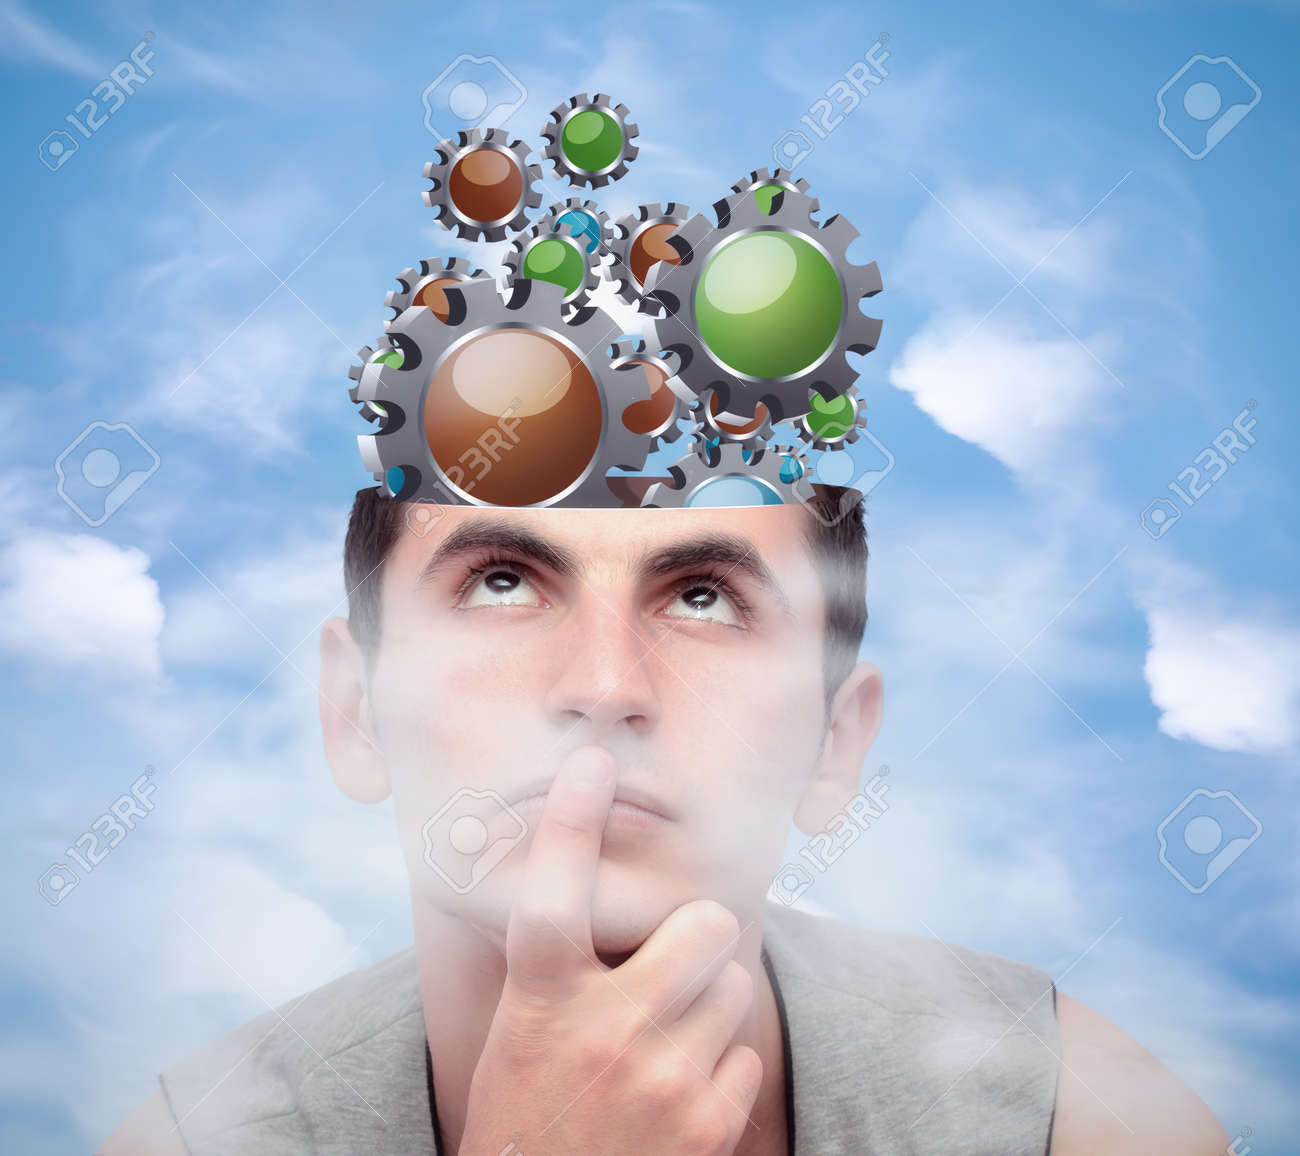 Image result for man brainstorming